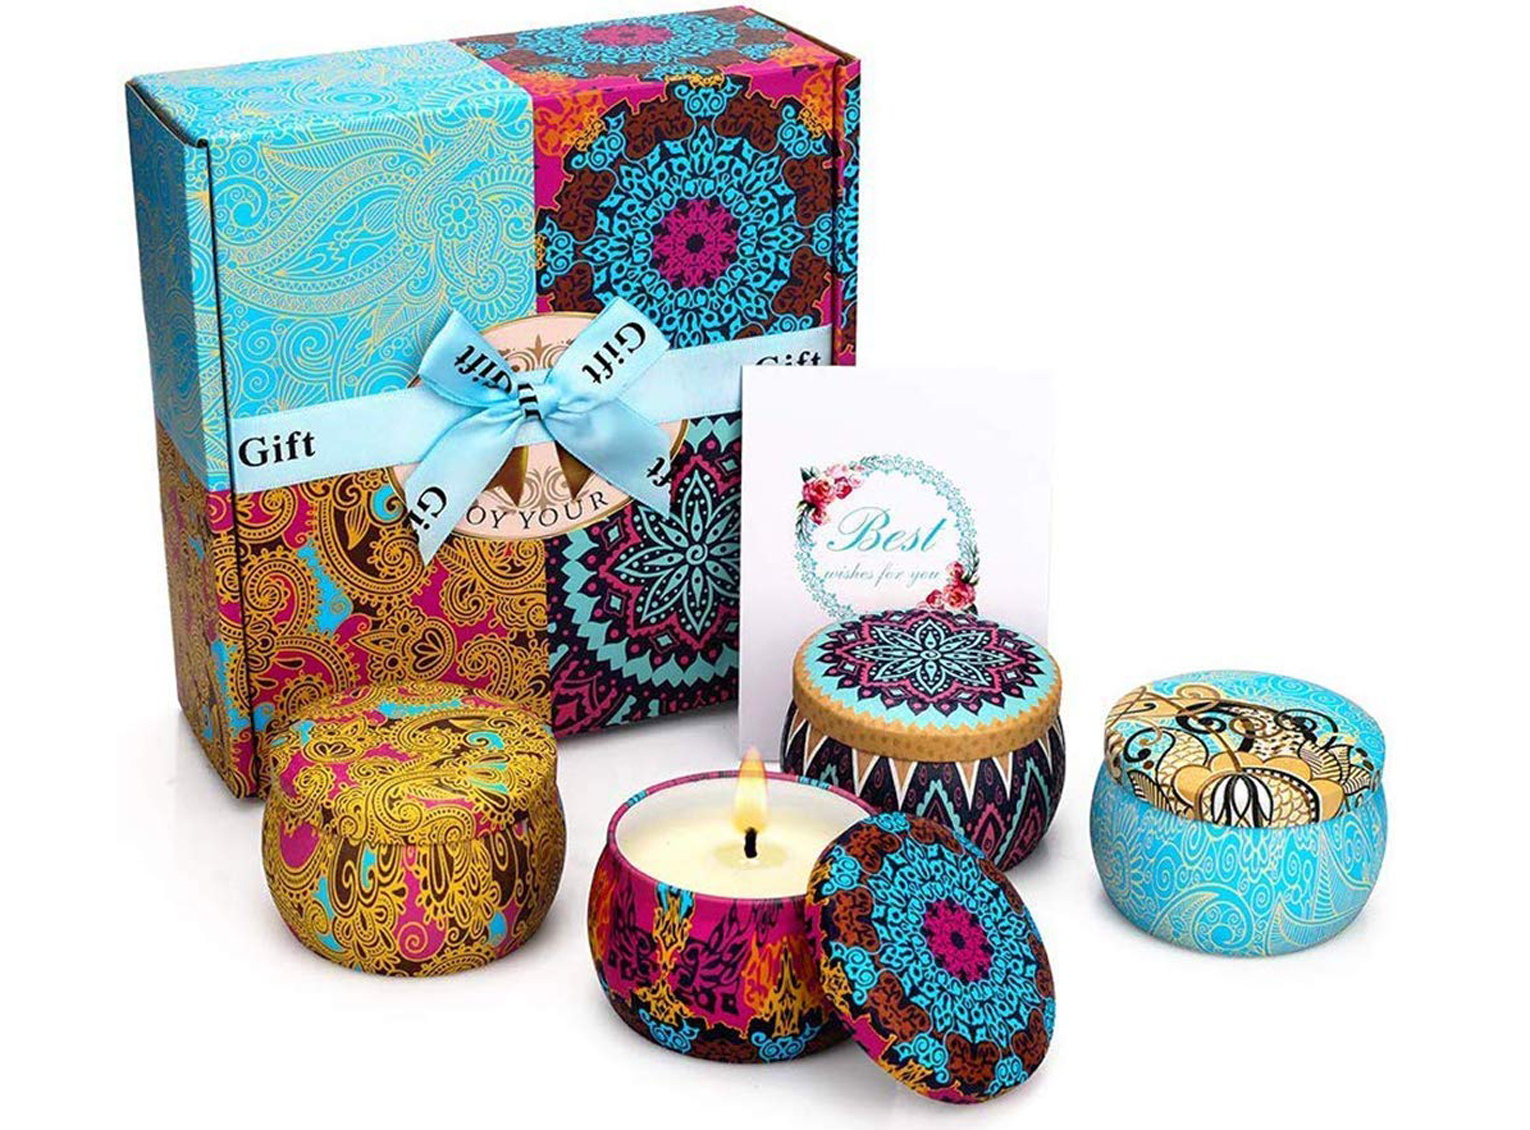 Scented-candles. 20 Unexpected and Creative Gift Ideas for Best Friends